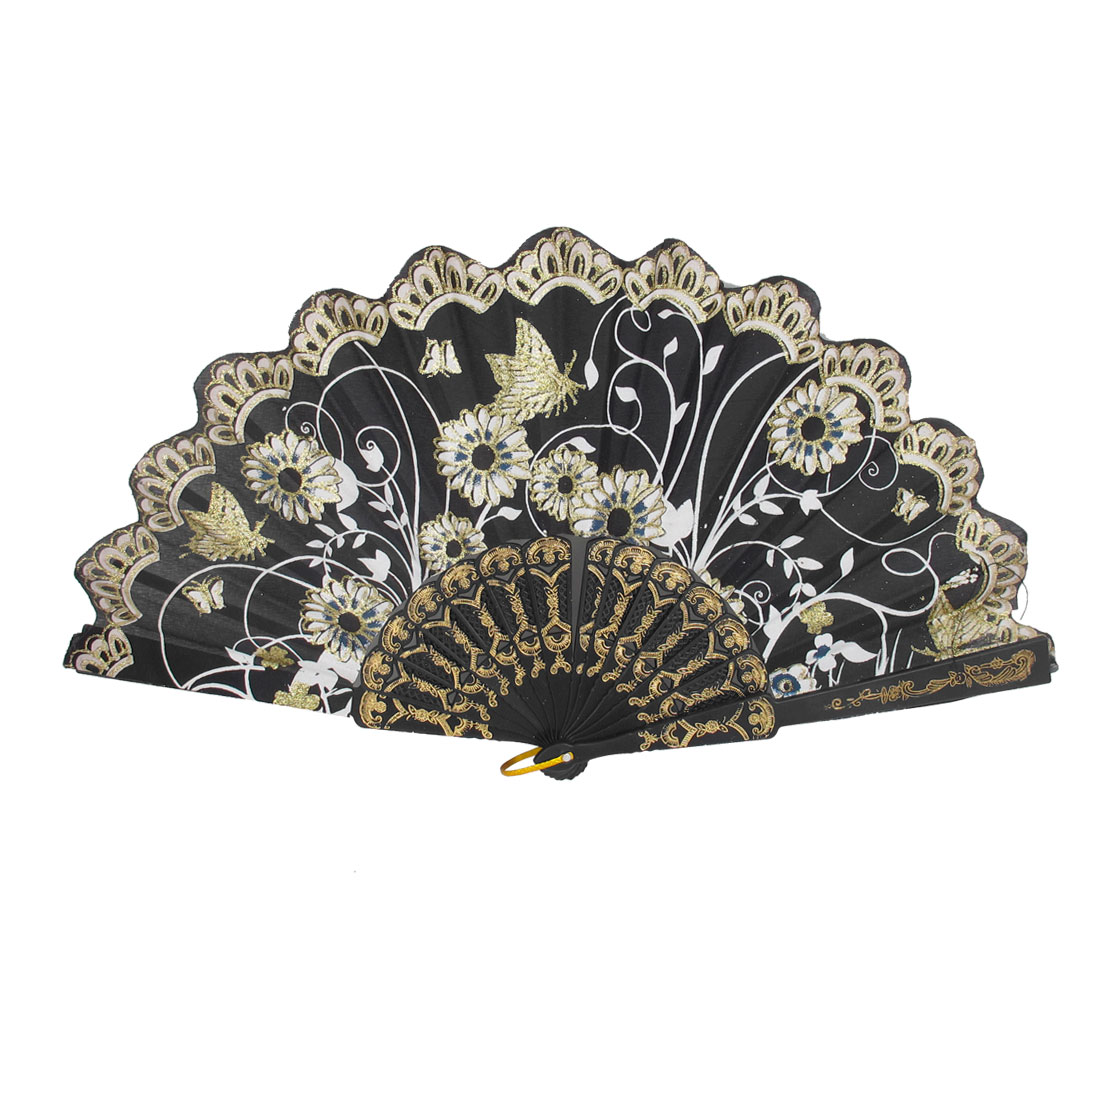 Lady Wedding Party Gift Plastic Ribs Flower Butterfly Pattern Folding Hand Fan Black